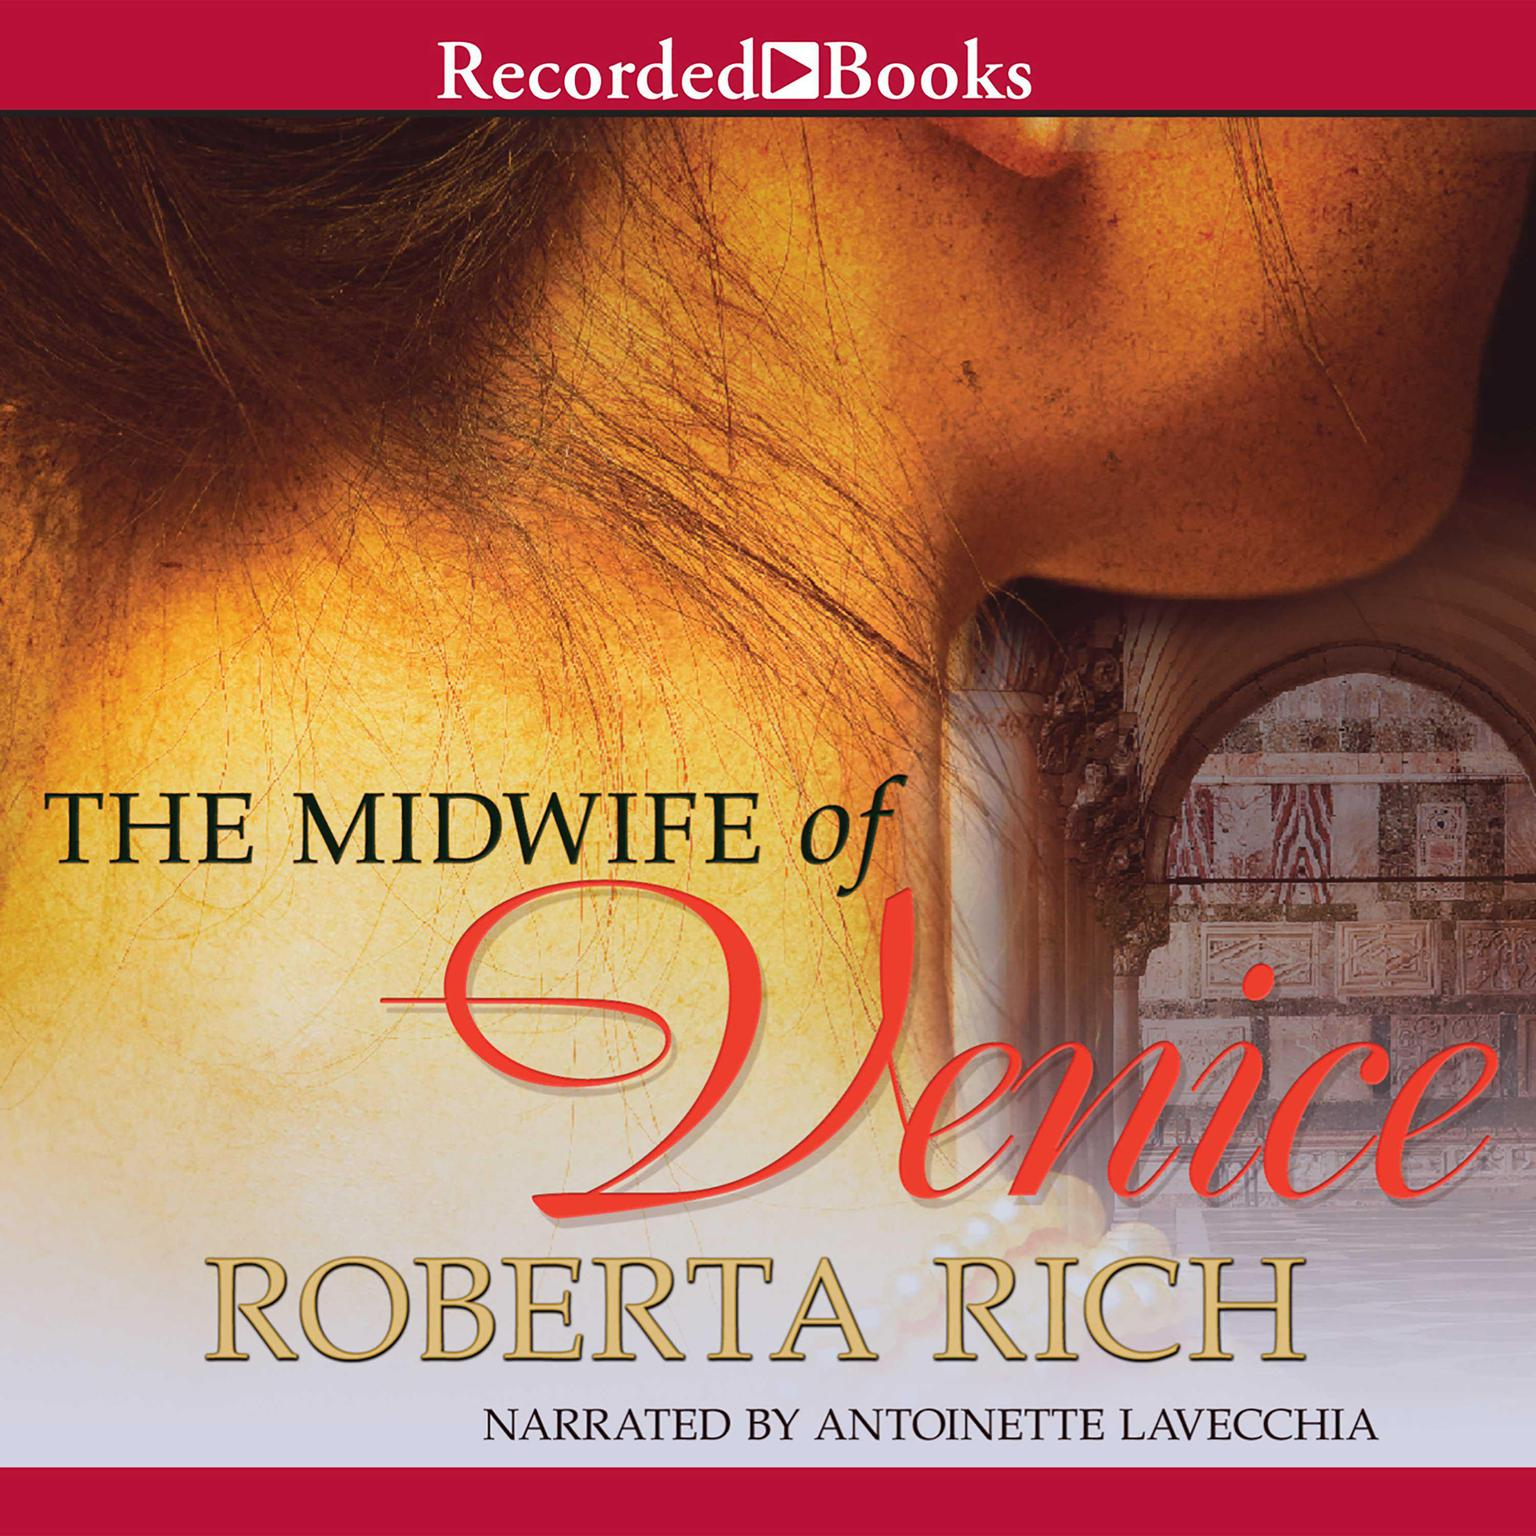 Printable The Midwife of Venice Audiobook Cover Art